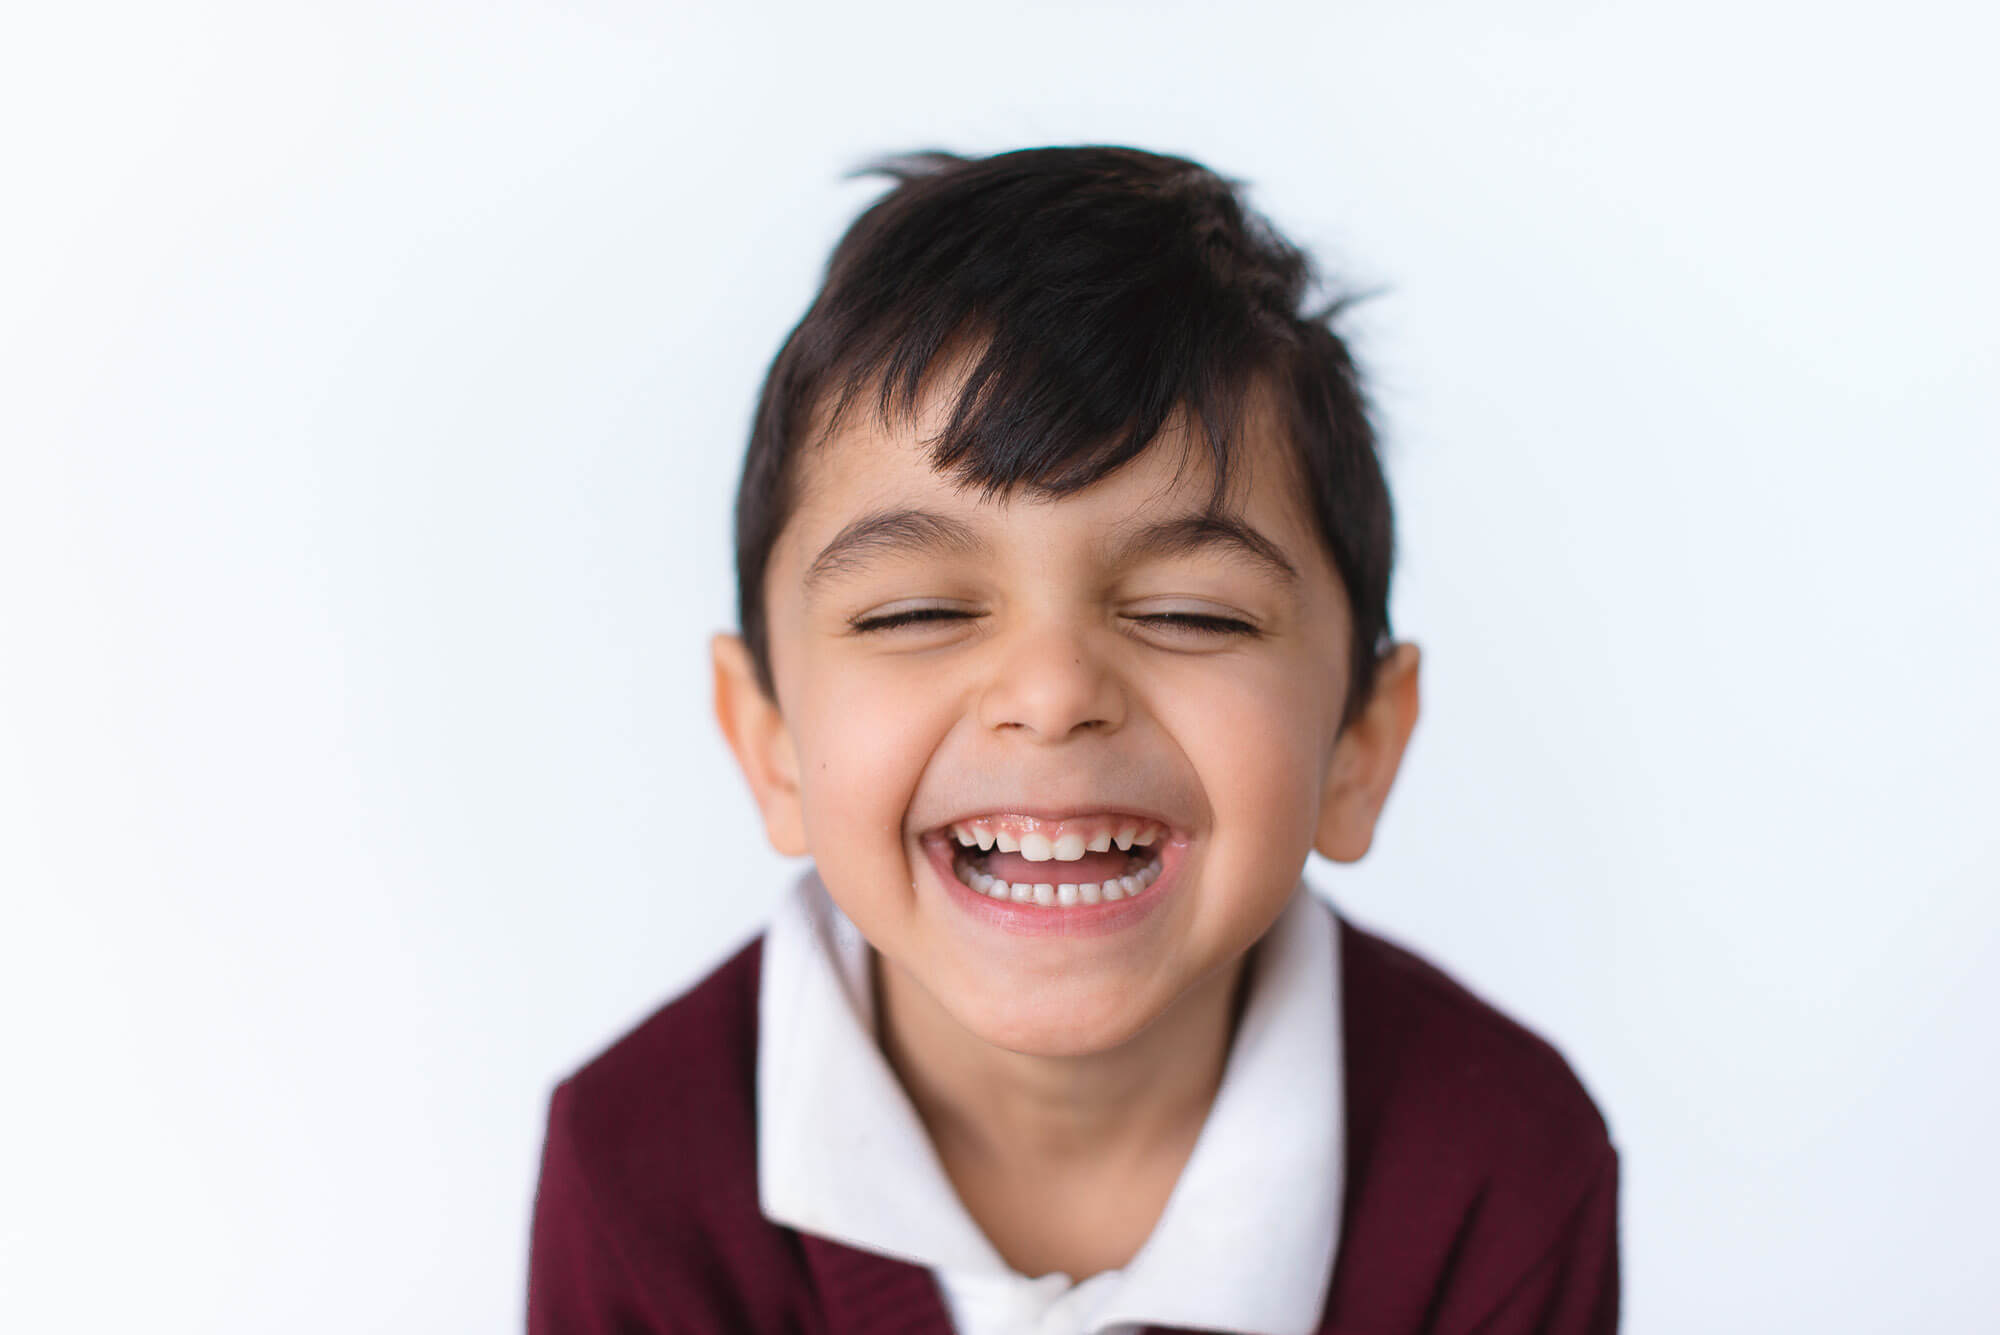 boutique school photography boy with eyes closed and huge grin